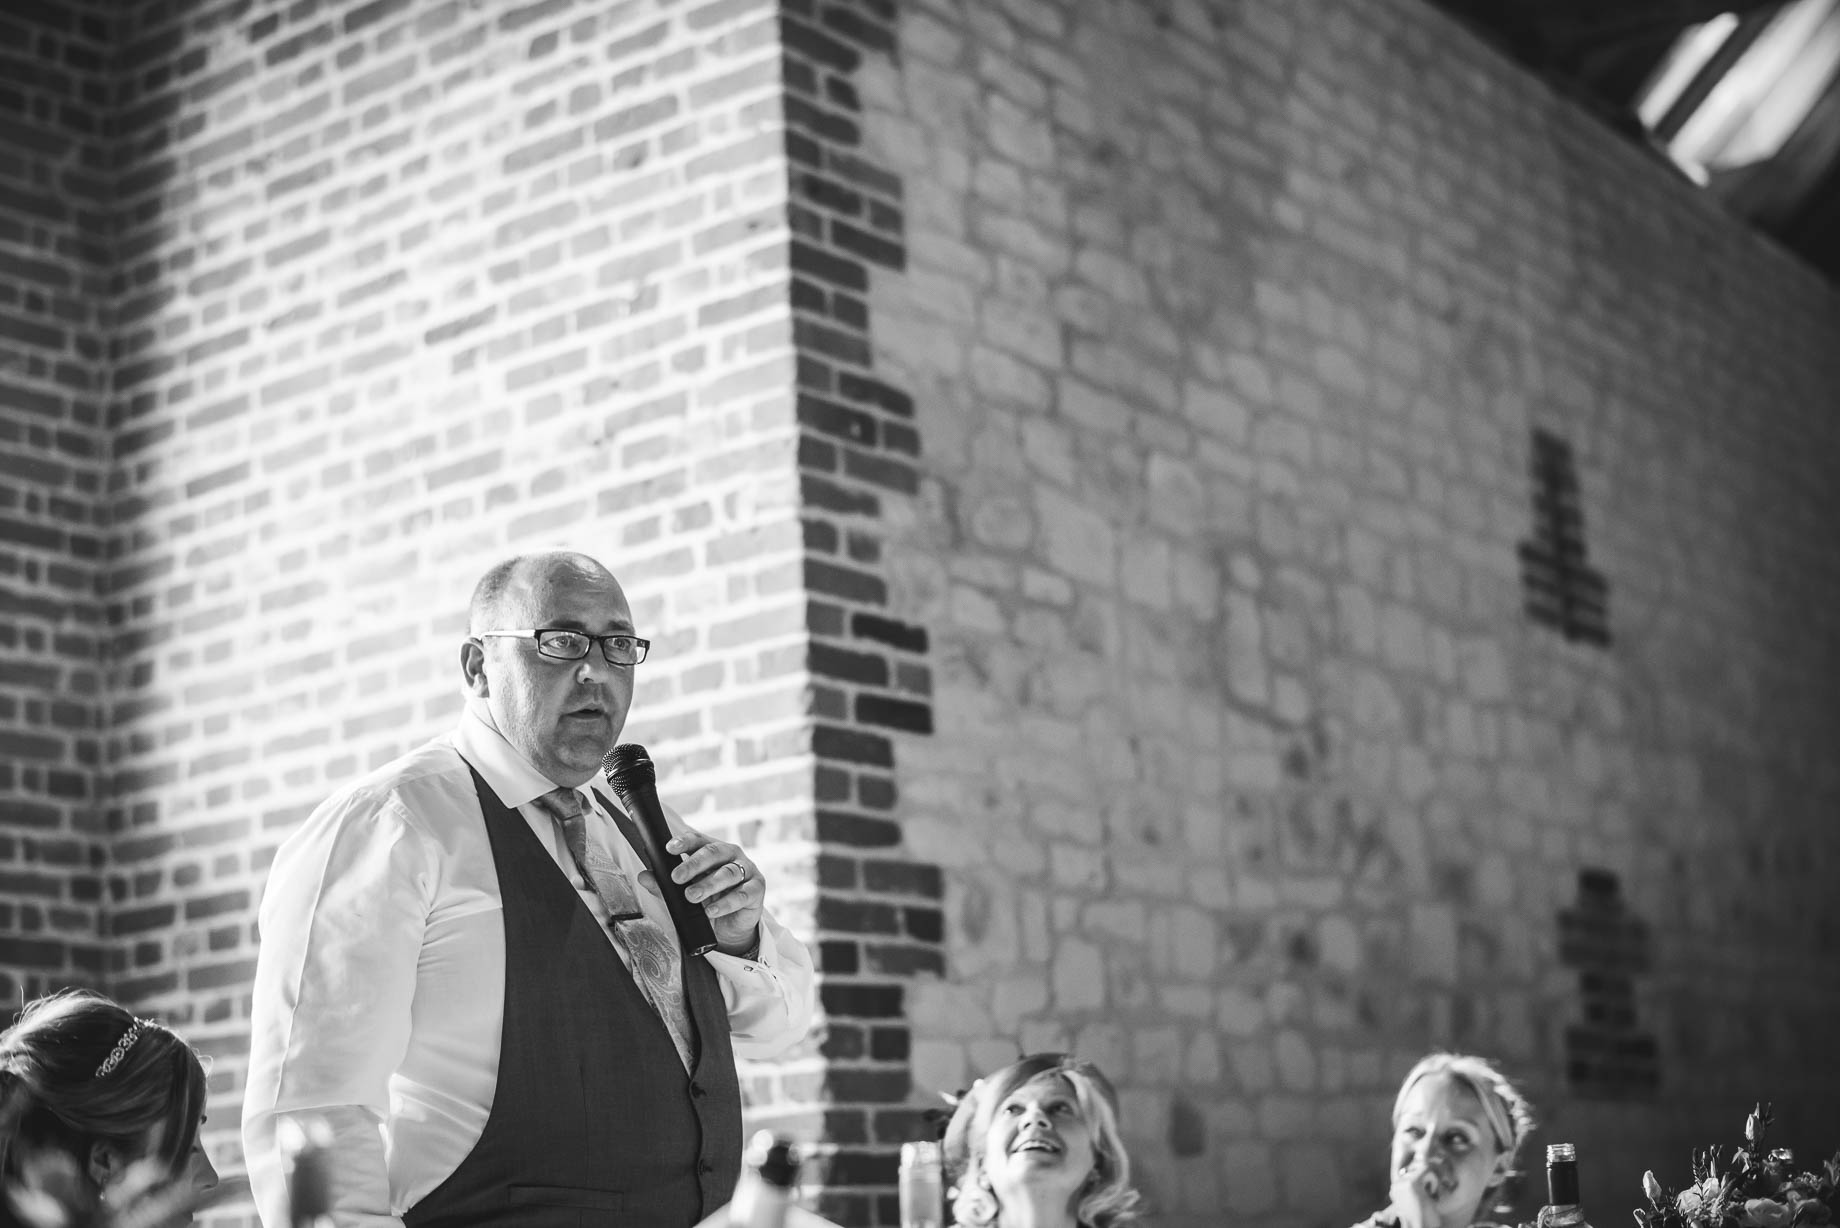 Bury Court Barn wedding photography - Guy Collier - Kirsty and Lewis (117 of 150)